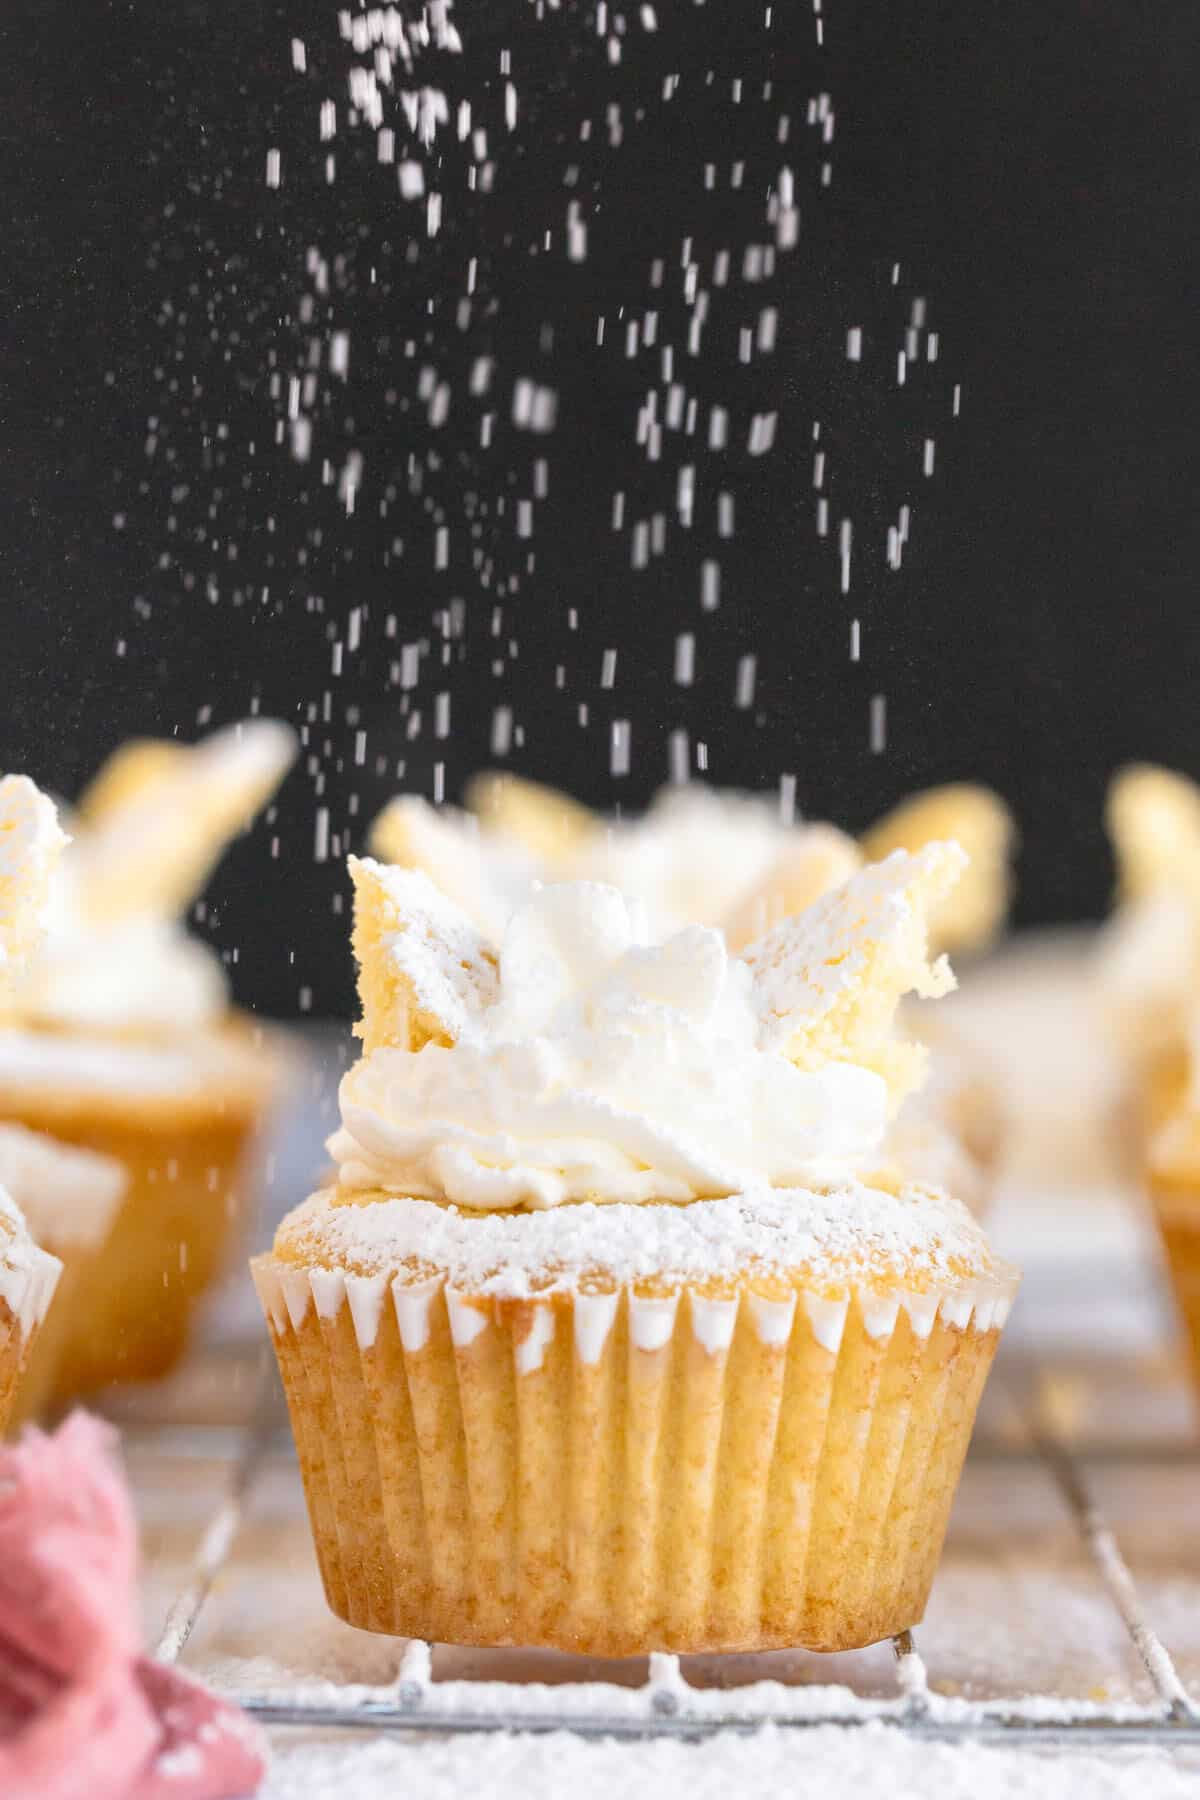 powdered sugar dusting over a cupcake